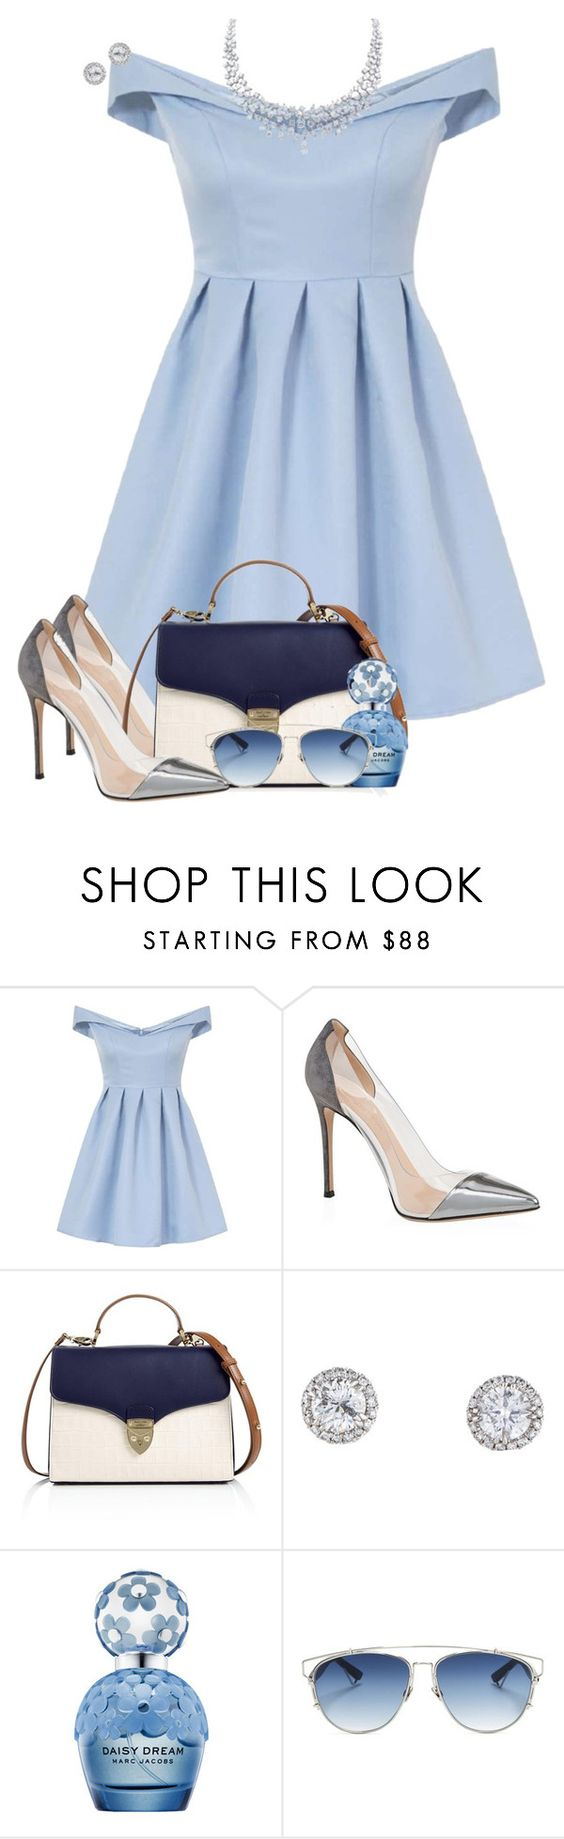 """""""Cinderella 👑"""" by sofia-collins8 ❤ liked on Polyvore featuring Chi Chi, Gianvito Rossi, Aspinal of London, Marc Jacobs and Christian Dior"""